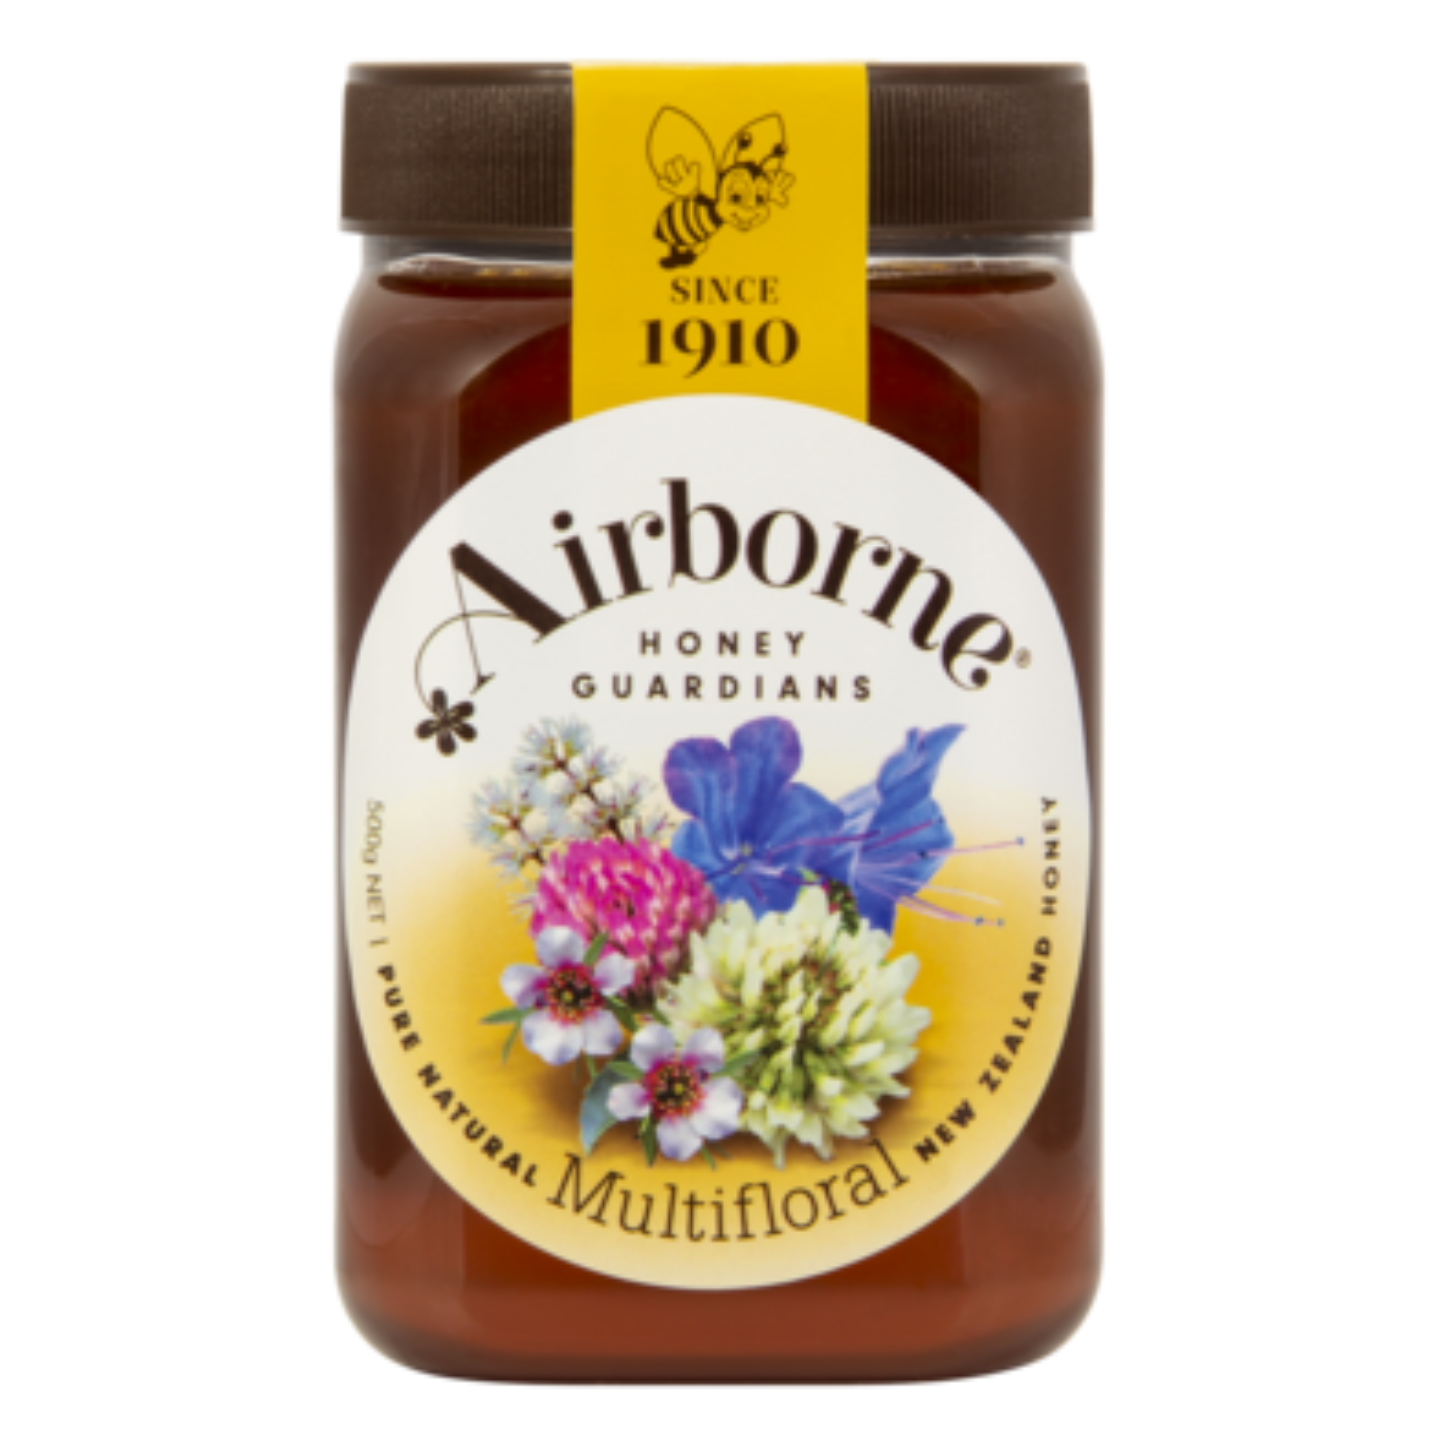 Airborne Floral Multifloral Honey 500g